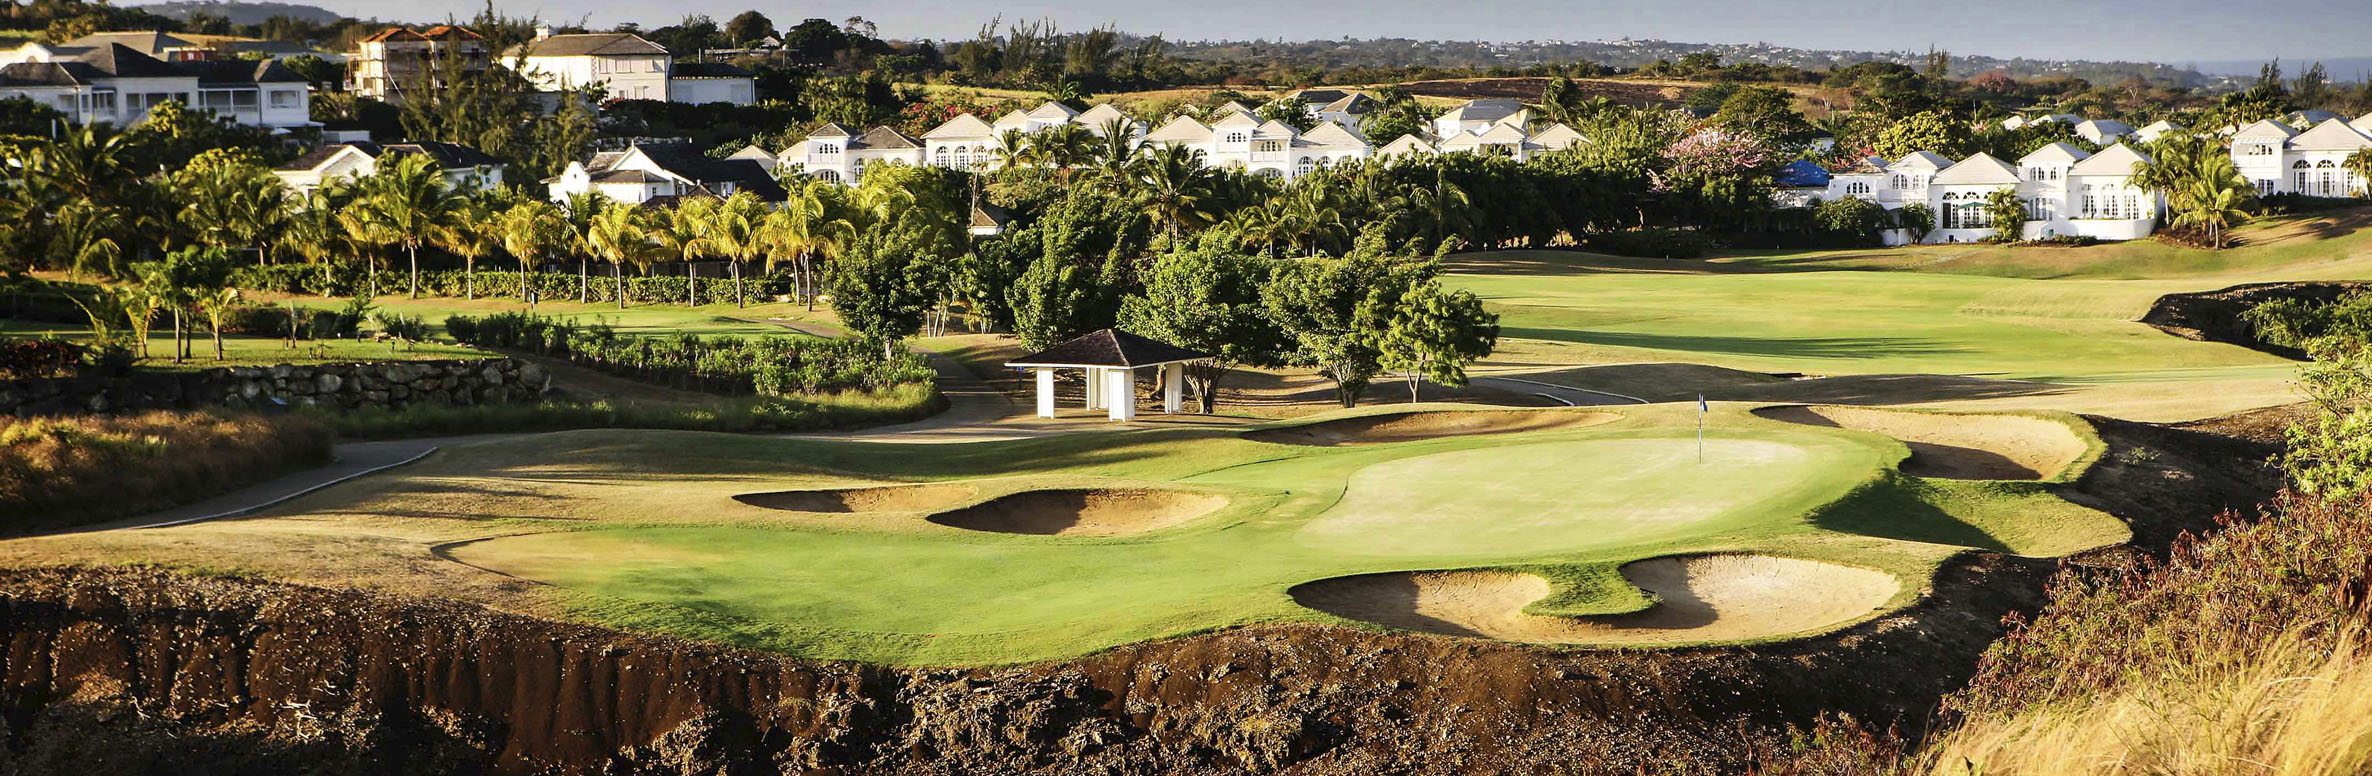 Golf Course Image - Royal Westmoreland No. 15